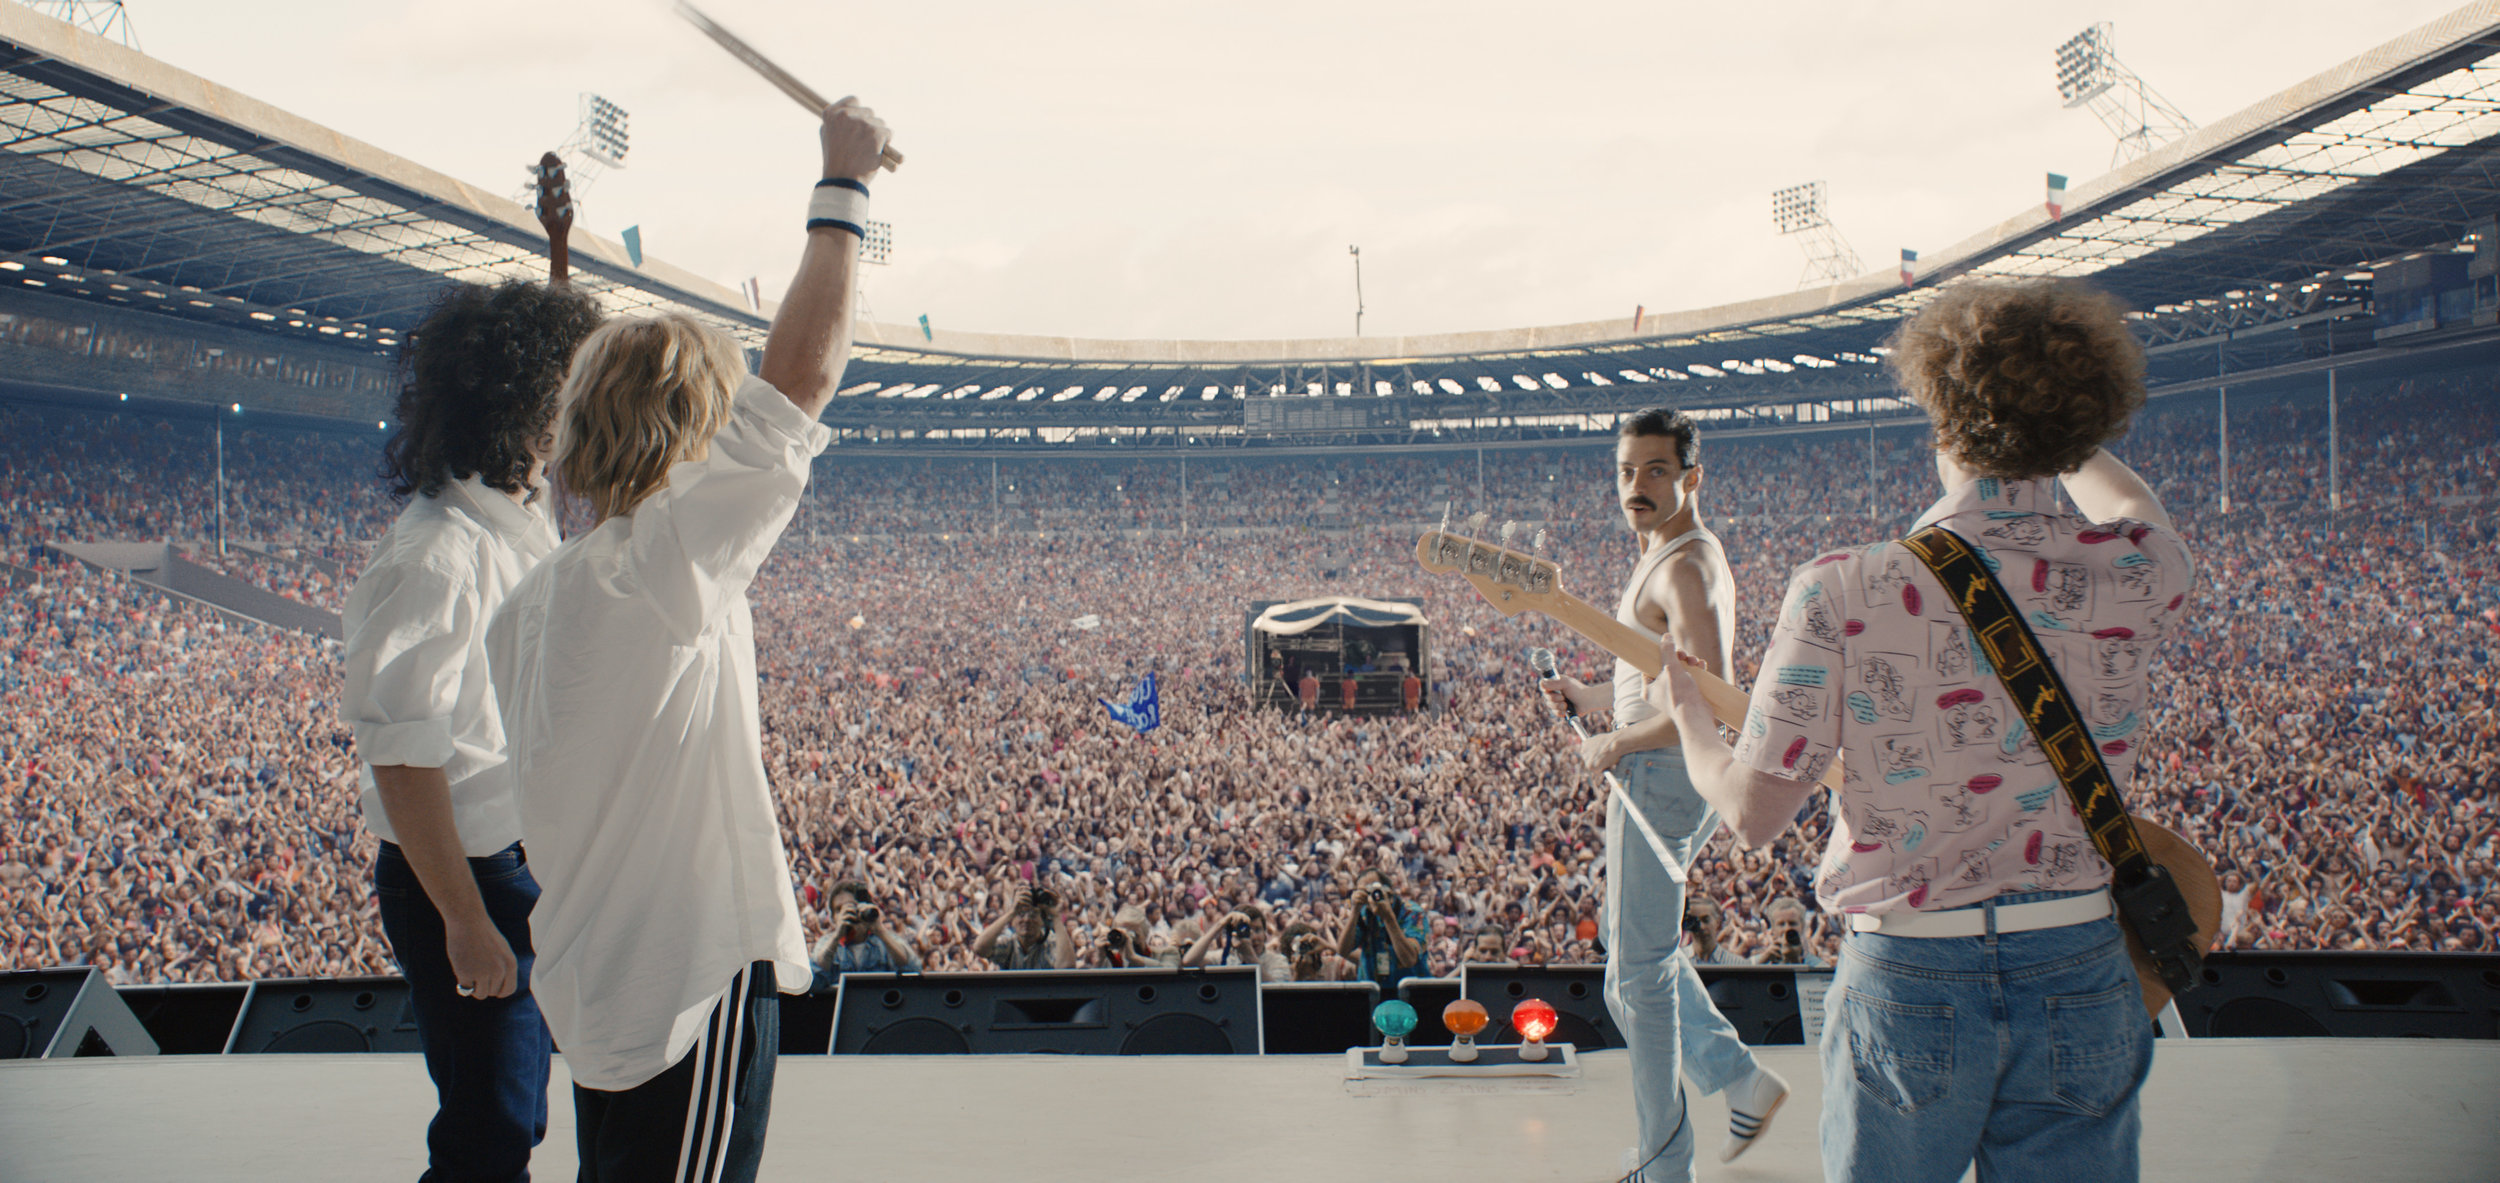 Queen-Bohemian-Rhapsody-Movie-Photo-2-4-26-18-Twentieth-Century-Fox.jpg